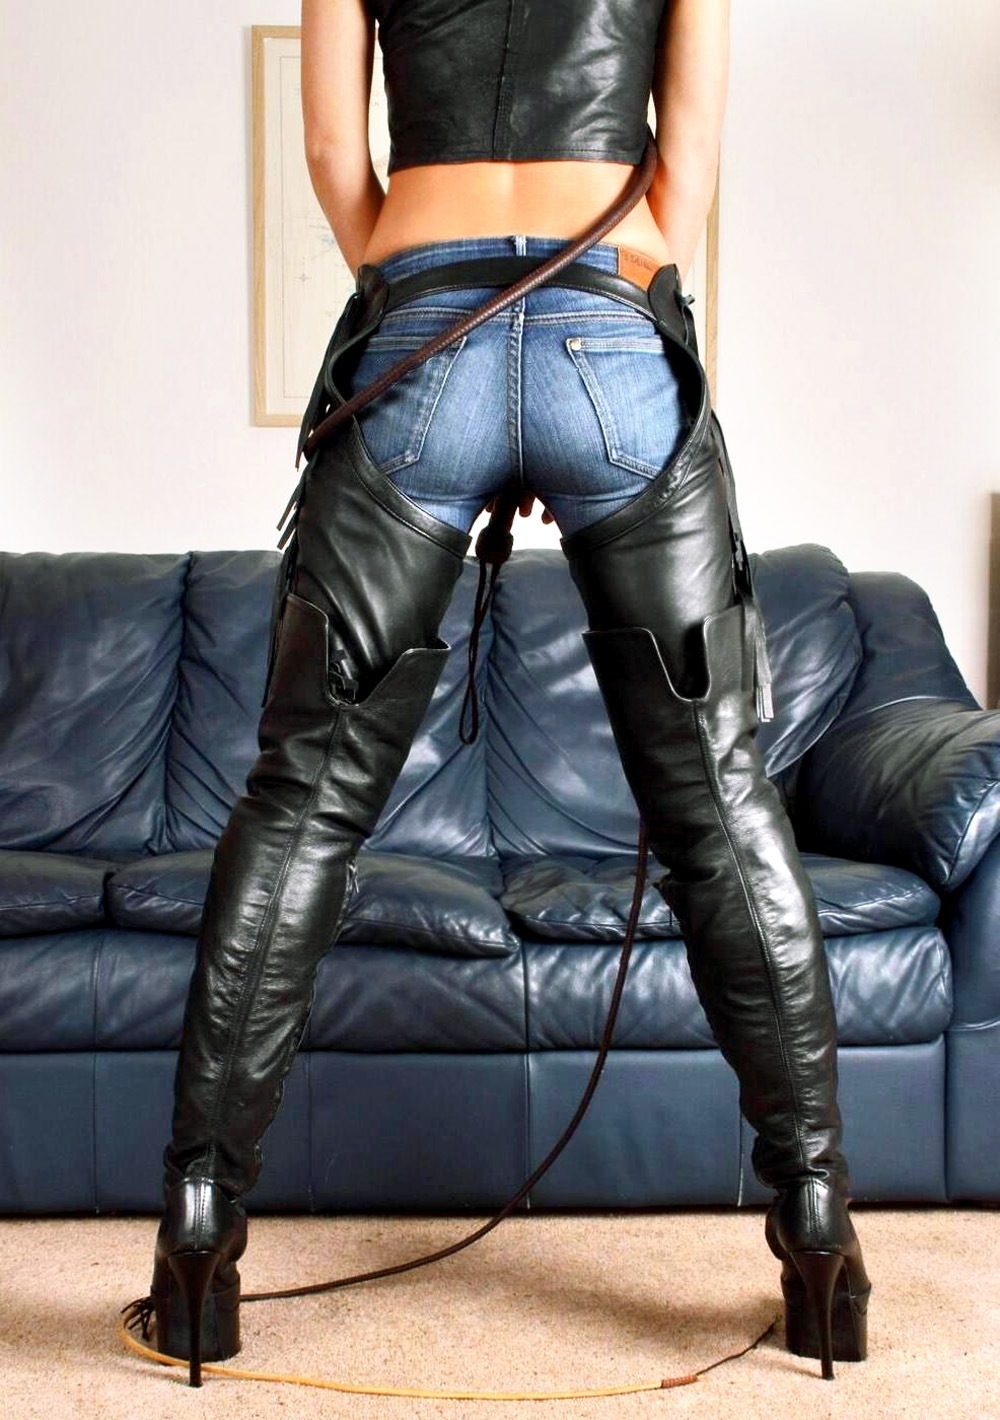 Mistress boots whip feet